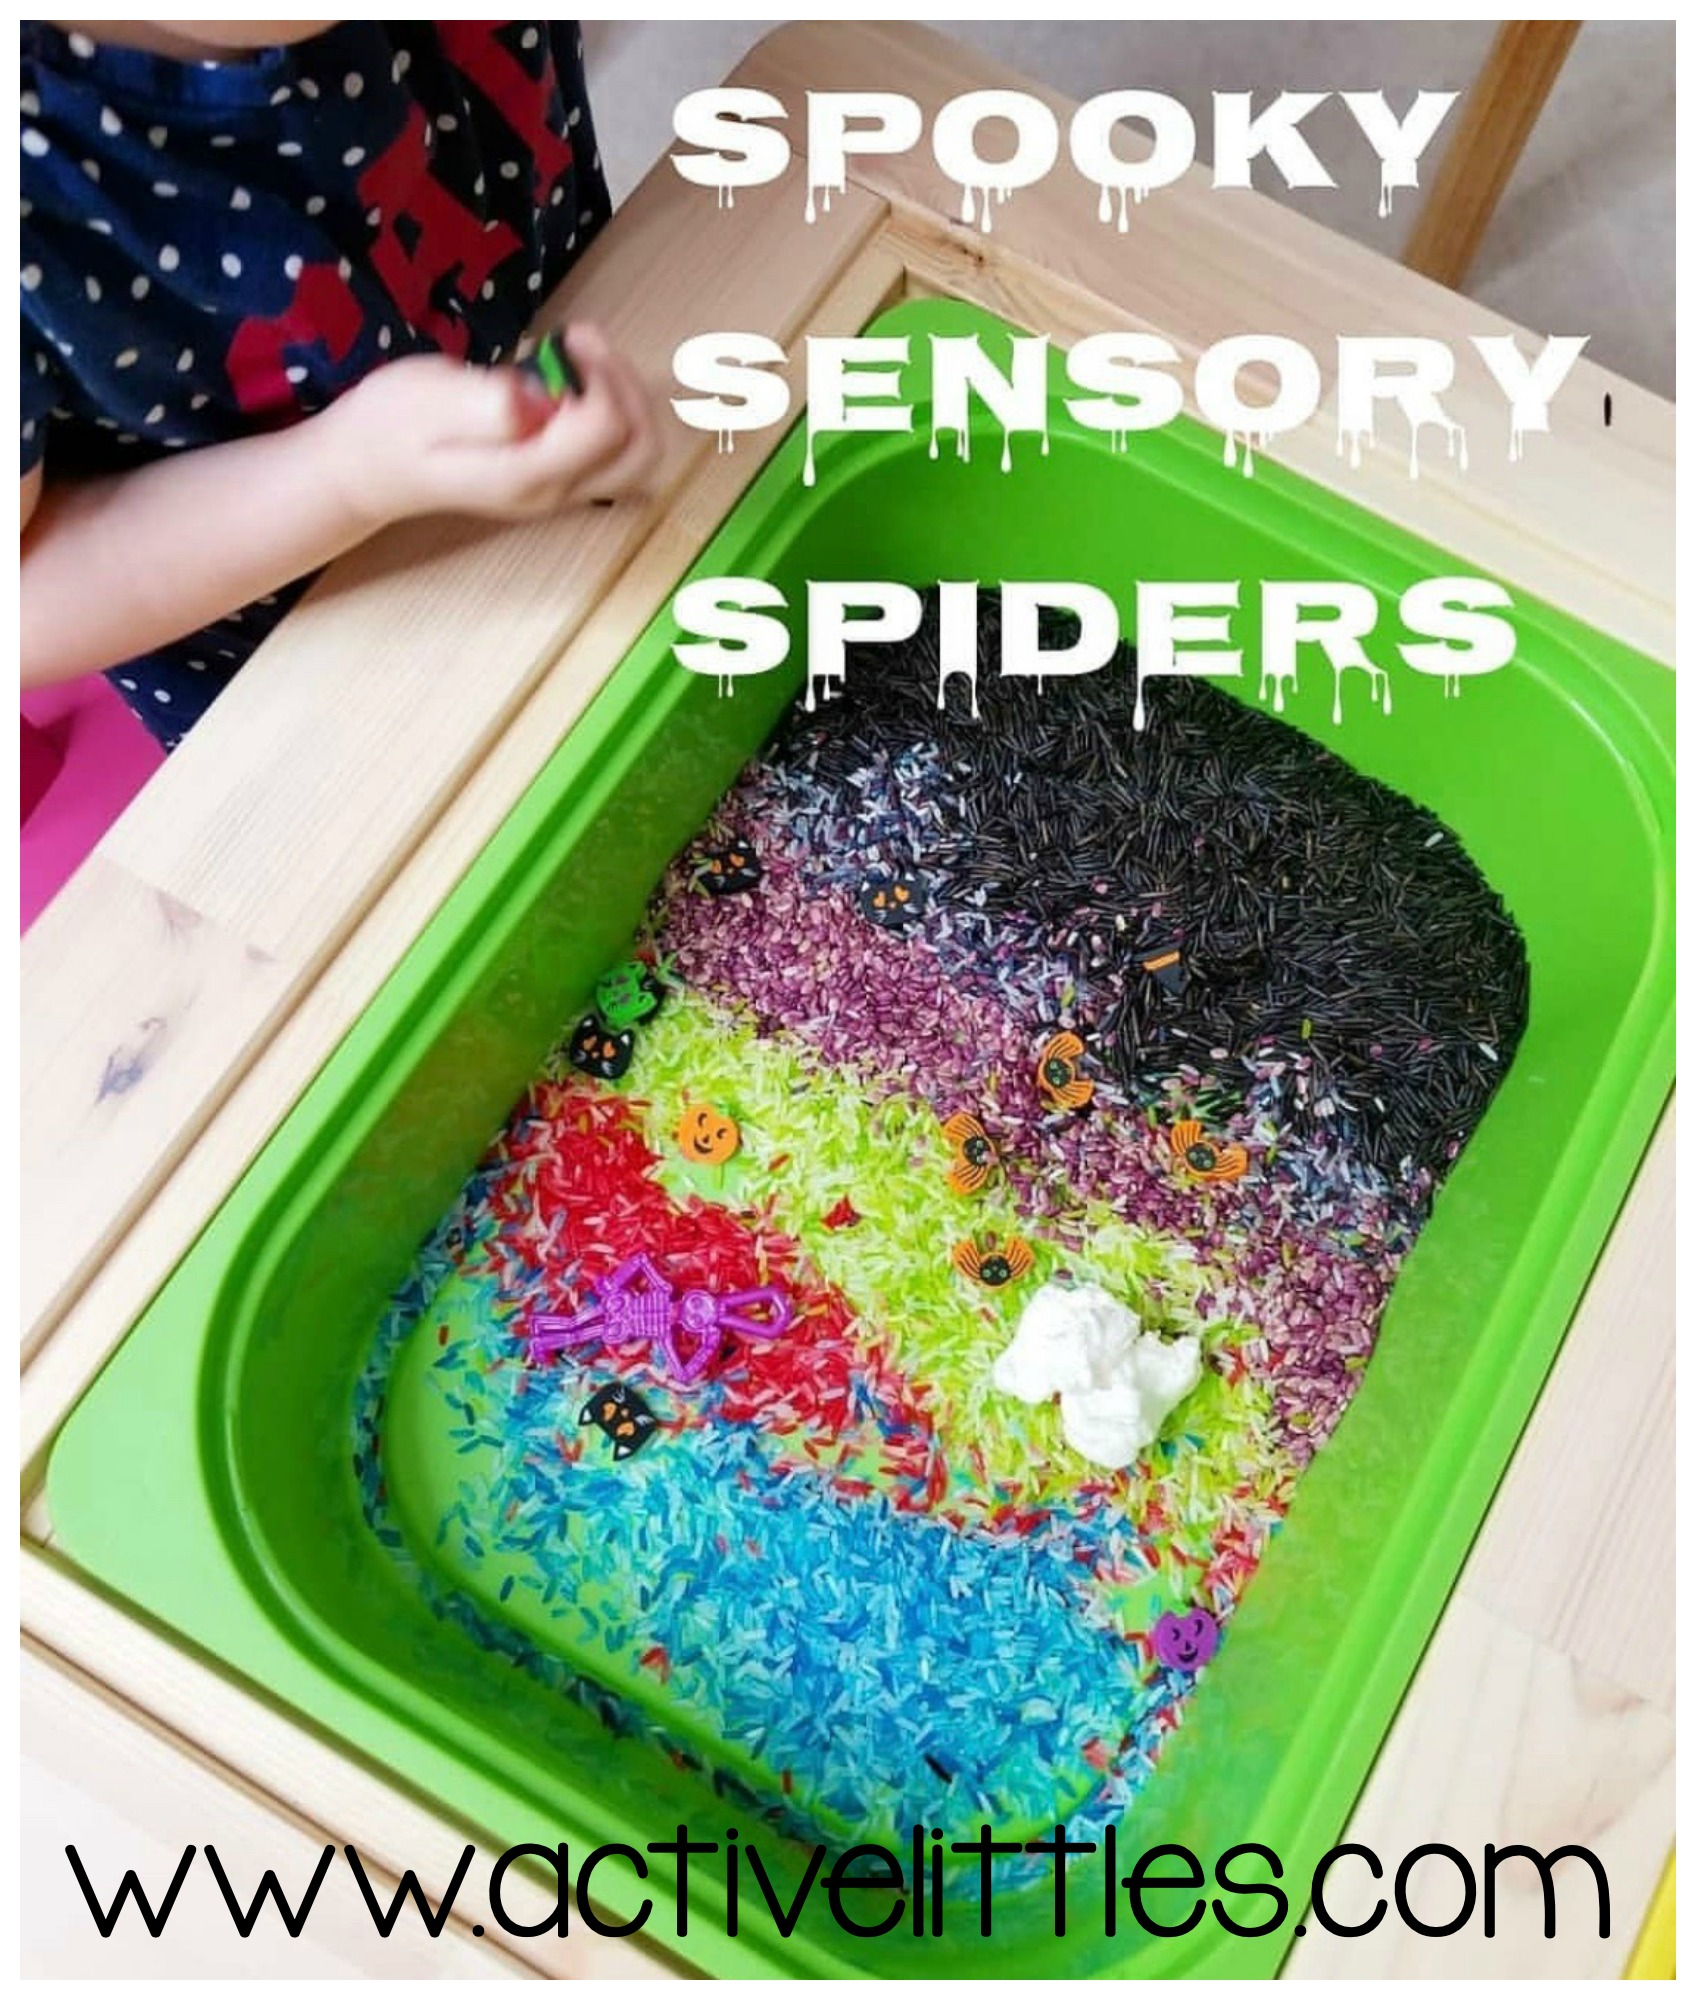 spooky sensory spiders halloween activities for toddlers